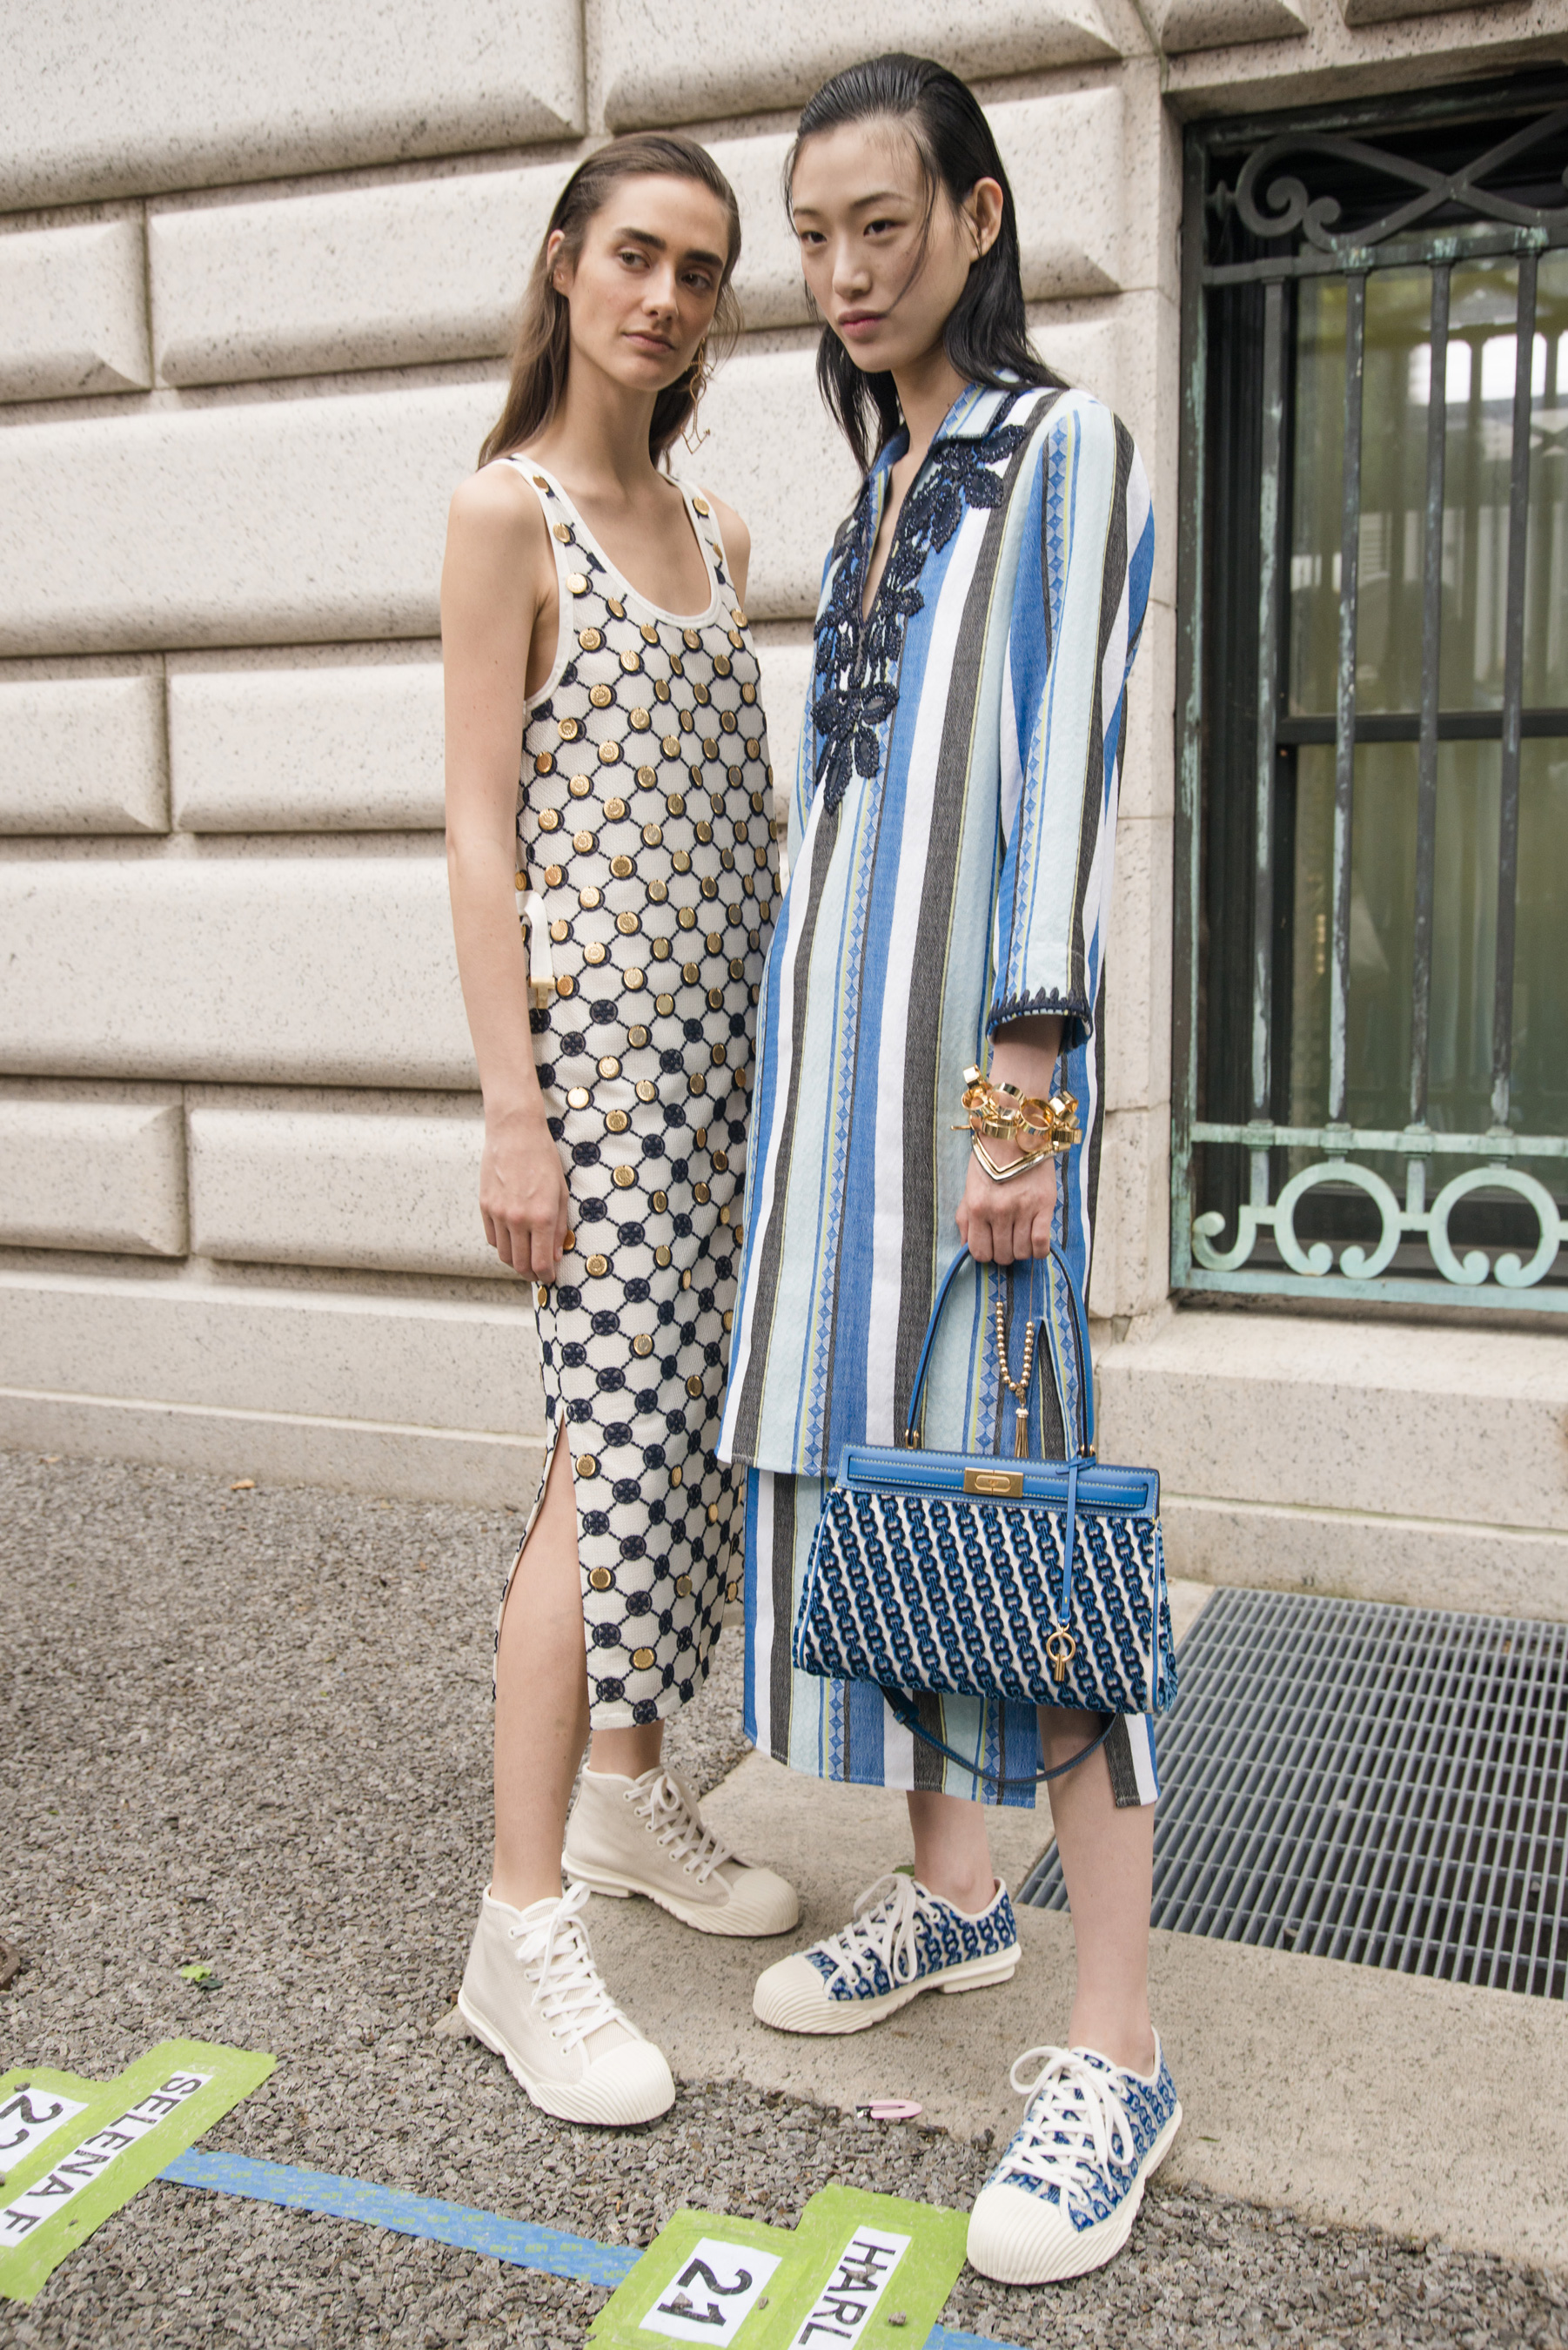 1d165912cebf Tory Burch Spring 2019 Fashion Show Backstage - The Impression